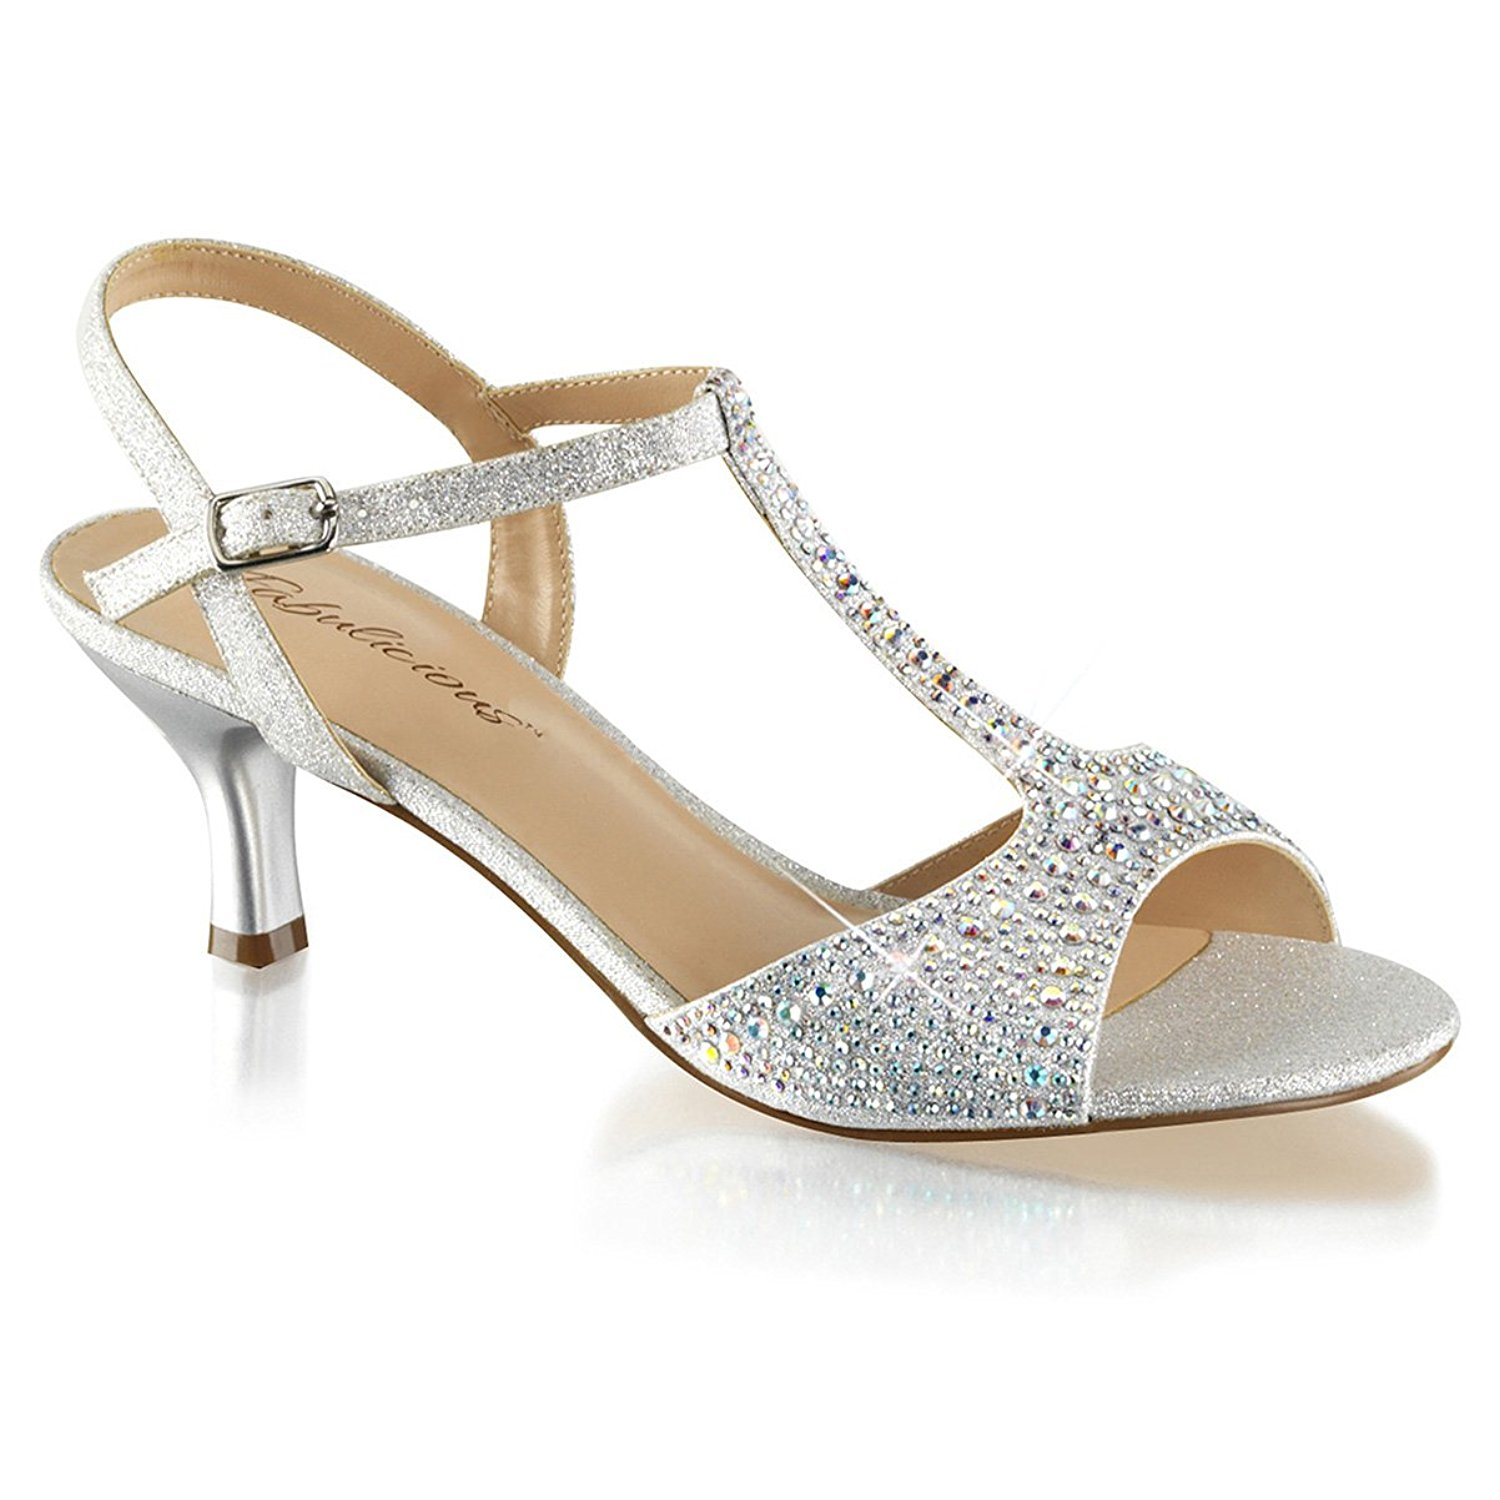 760e59555c50 Get Quotations · Summitfashions Womens Kitten Heel Wedding Shoes T Strap Sandals  Silver Rhinestone 2 1 2 Inch